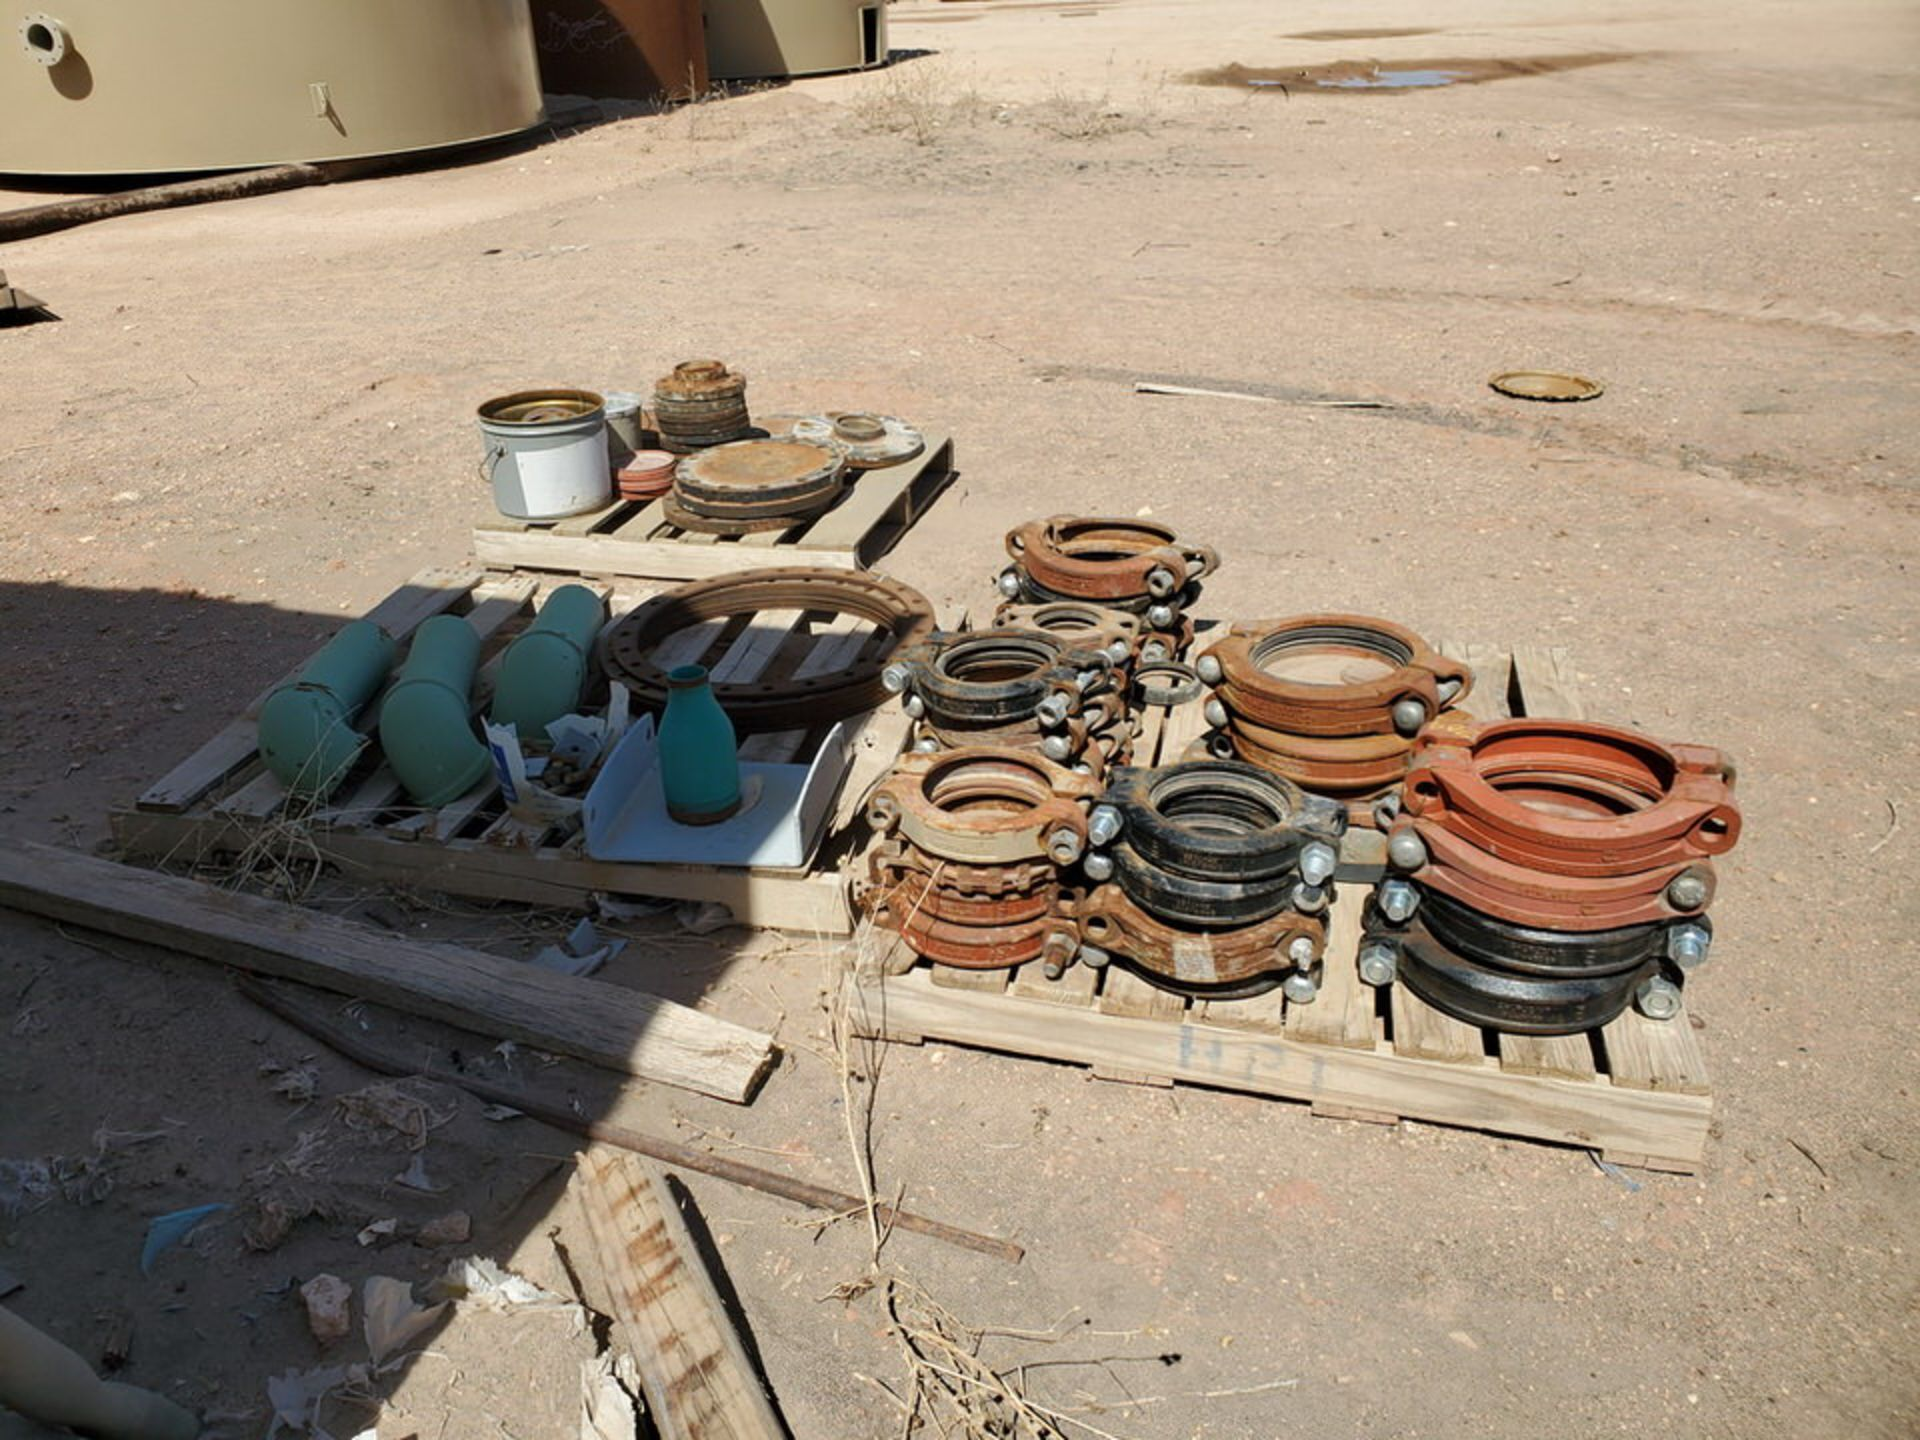 Assorted Fittings To Include But Not Limited To: Assorted Flanges, Caps, Couplings, etc.; Size - Image 9 of 14